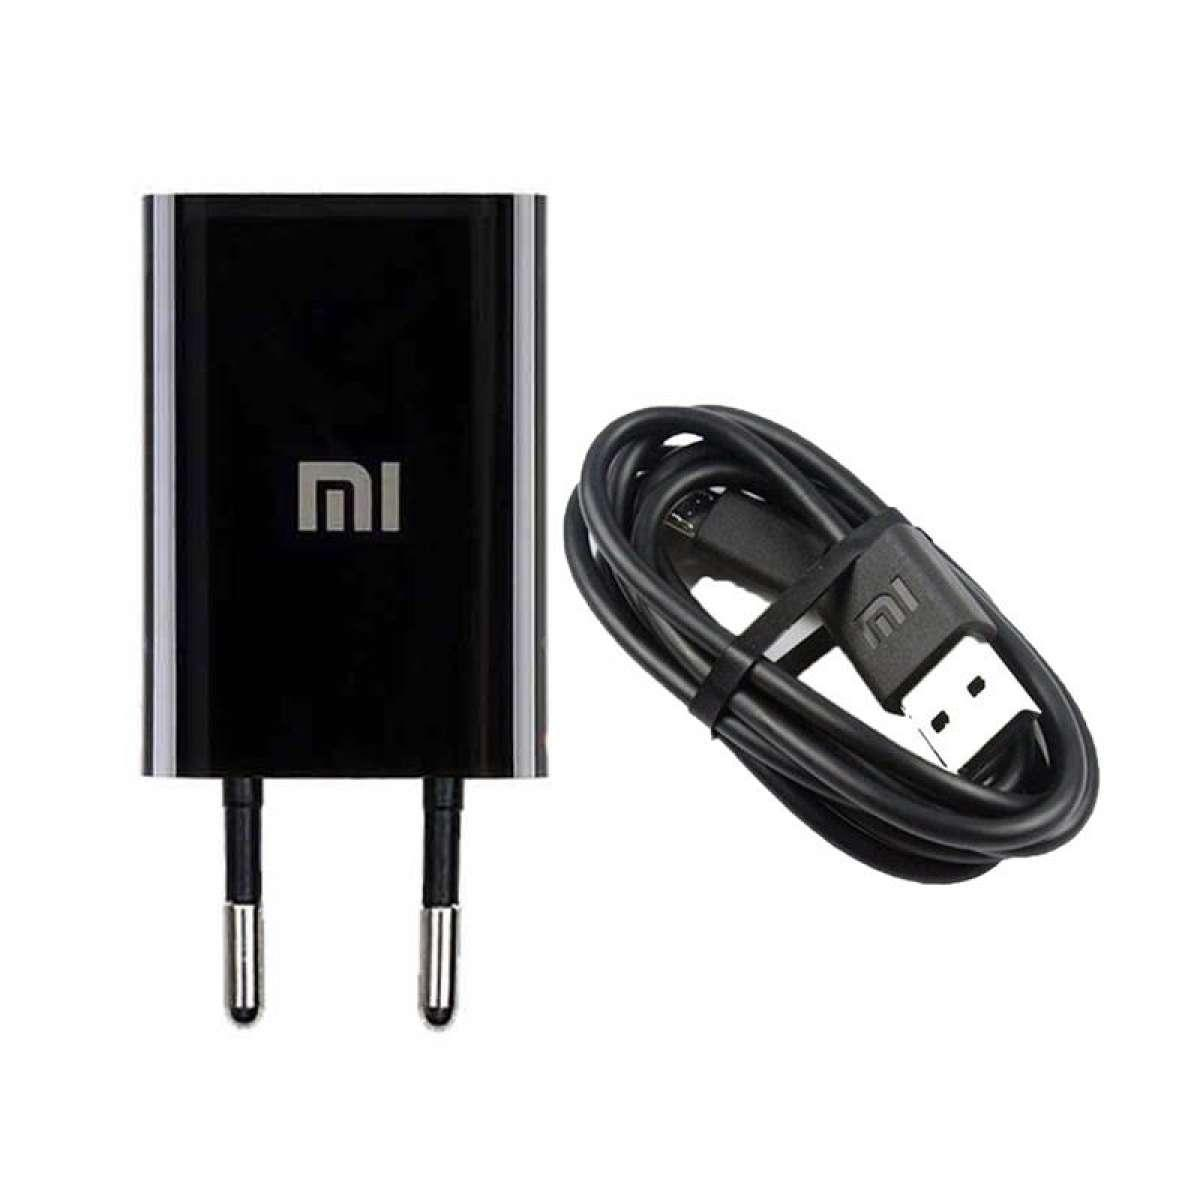 Daftar Harga November 2018 Usb 20 Male To Female M F Extension Cable Adapter Kitani 15 Meter Charger Xiomi Travel Micro 2a Hitam